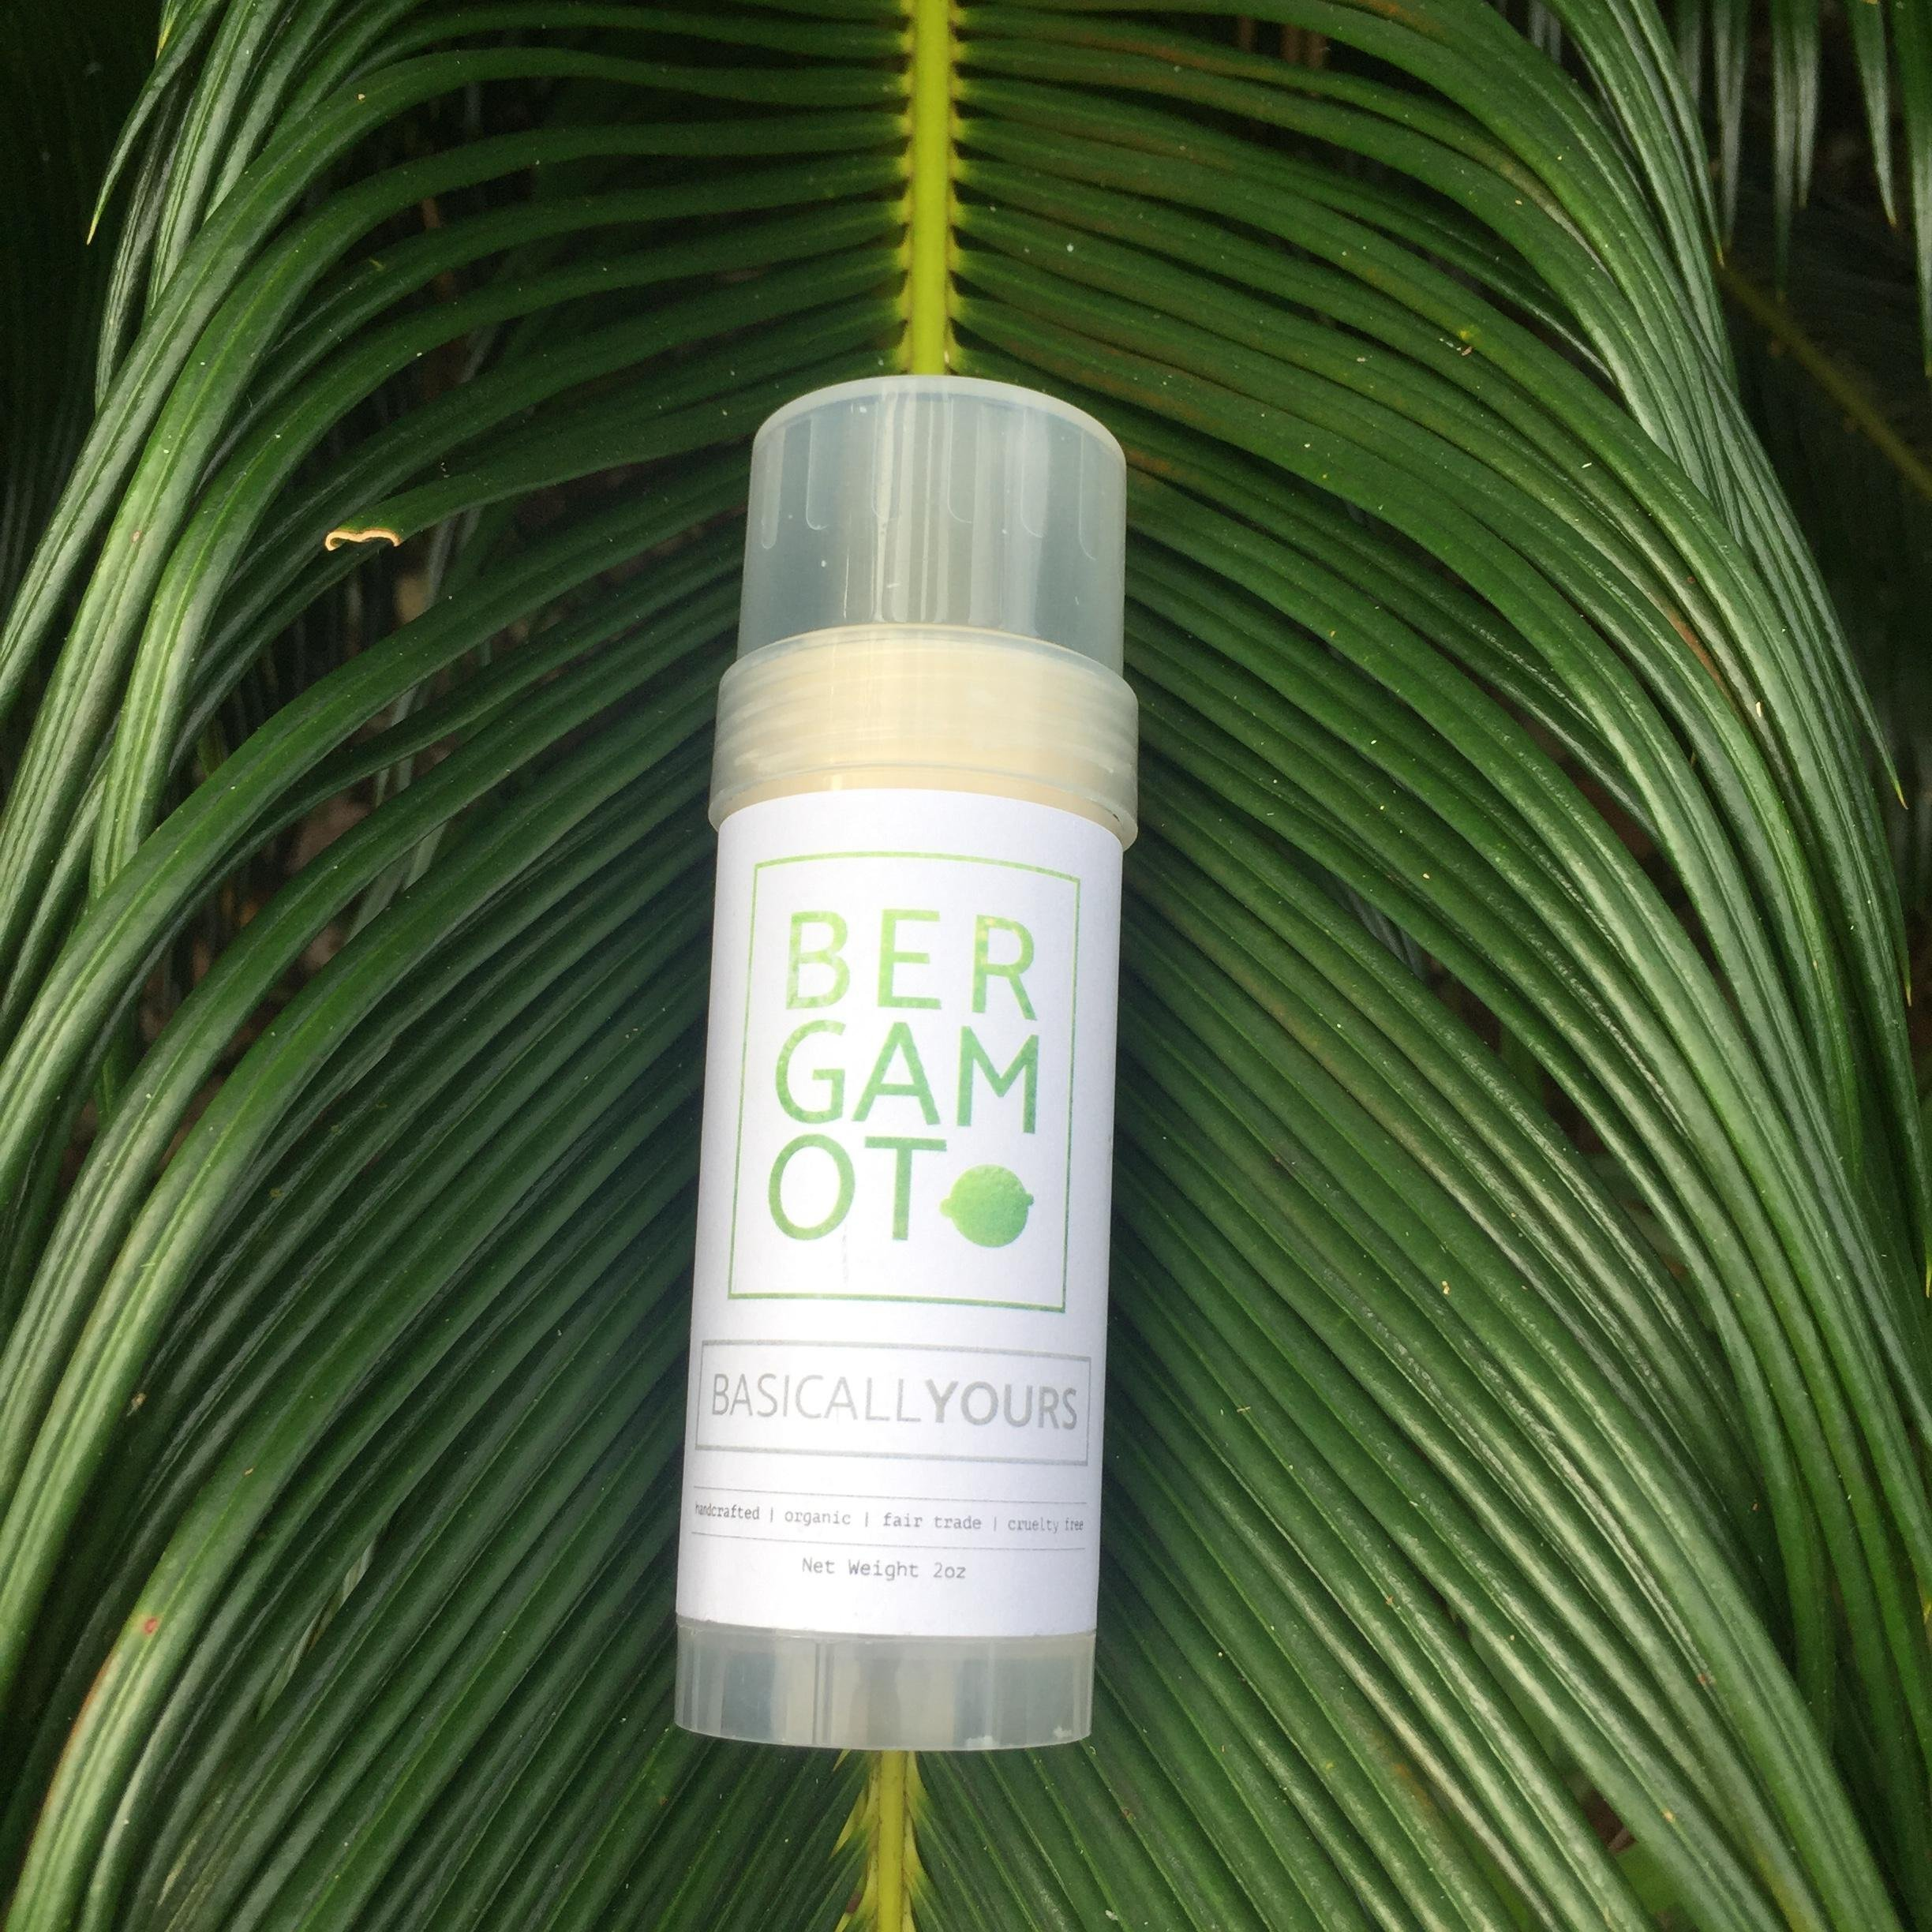 Super Effective Organic Deodorant - Aluminum Free - Infused with Plant Extracts